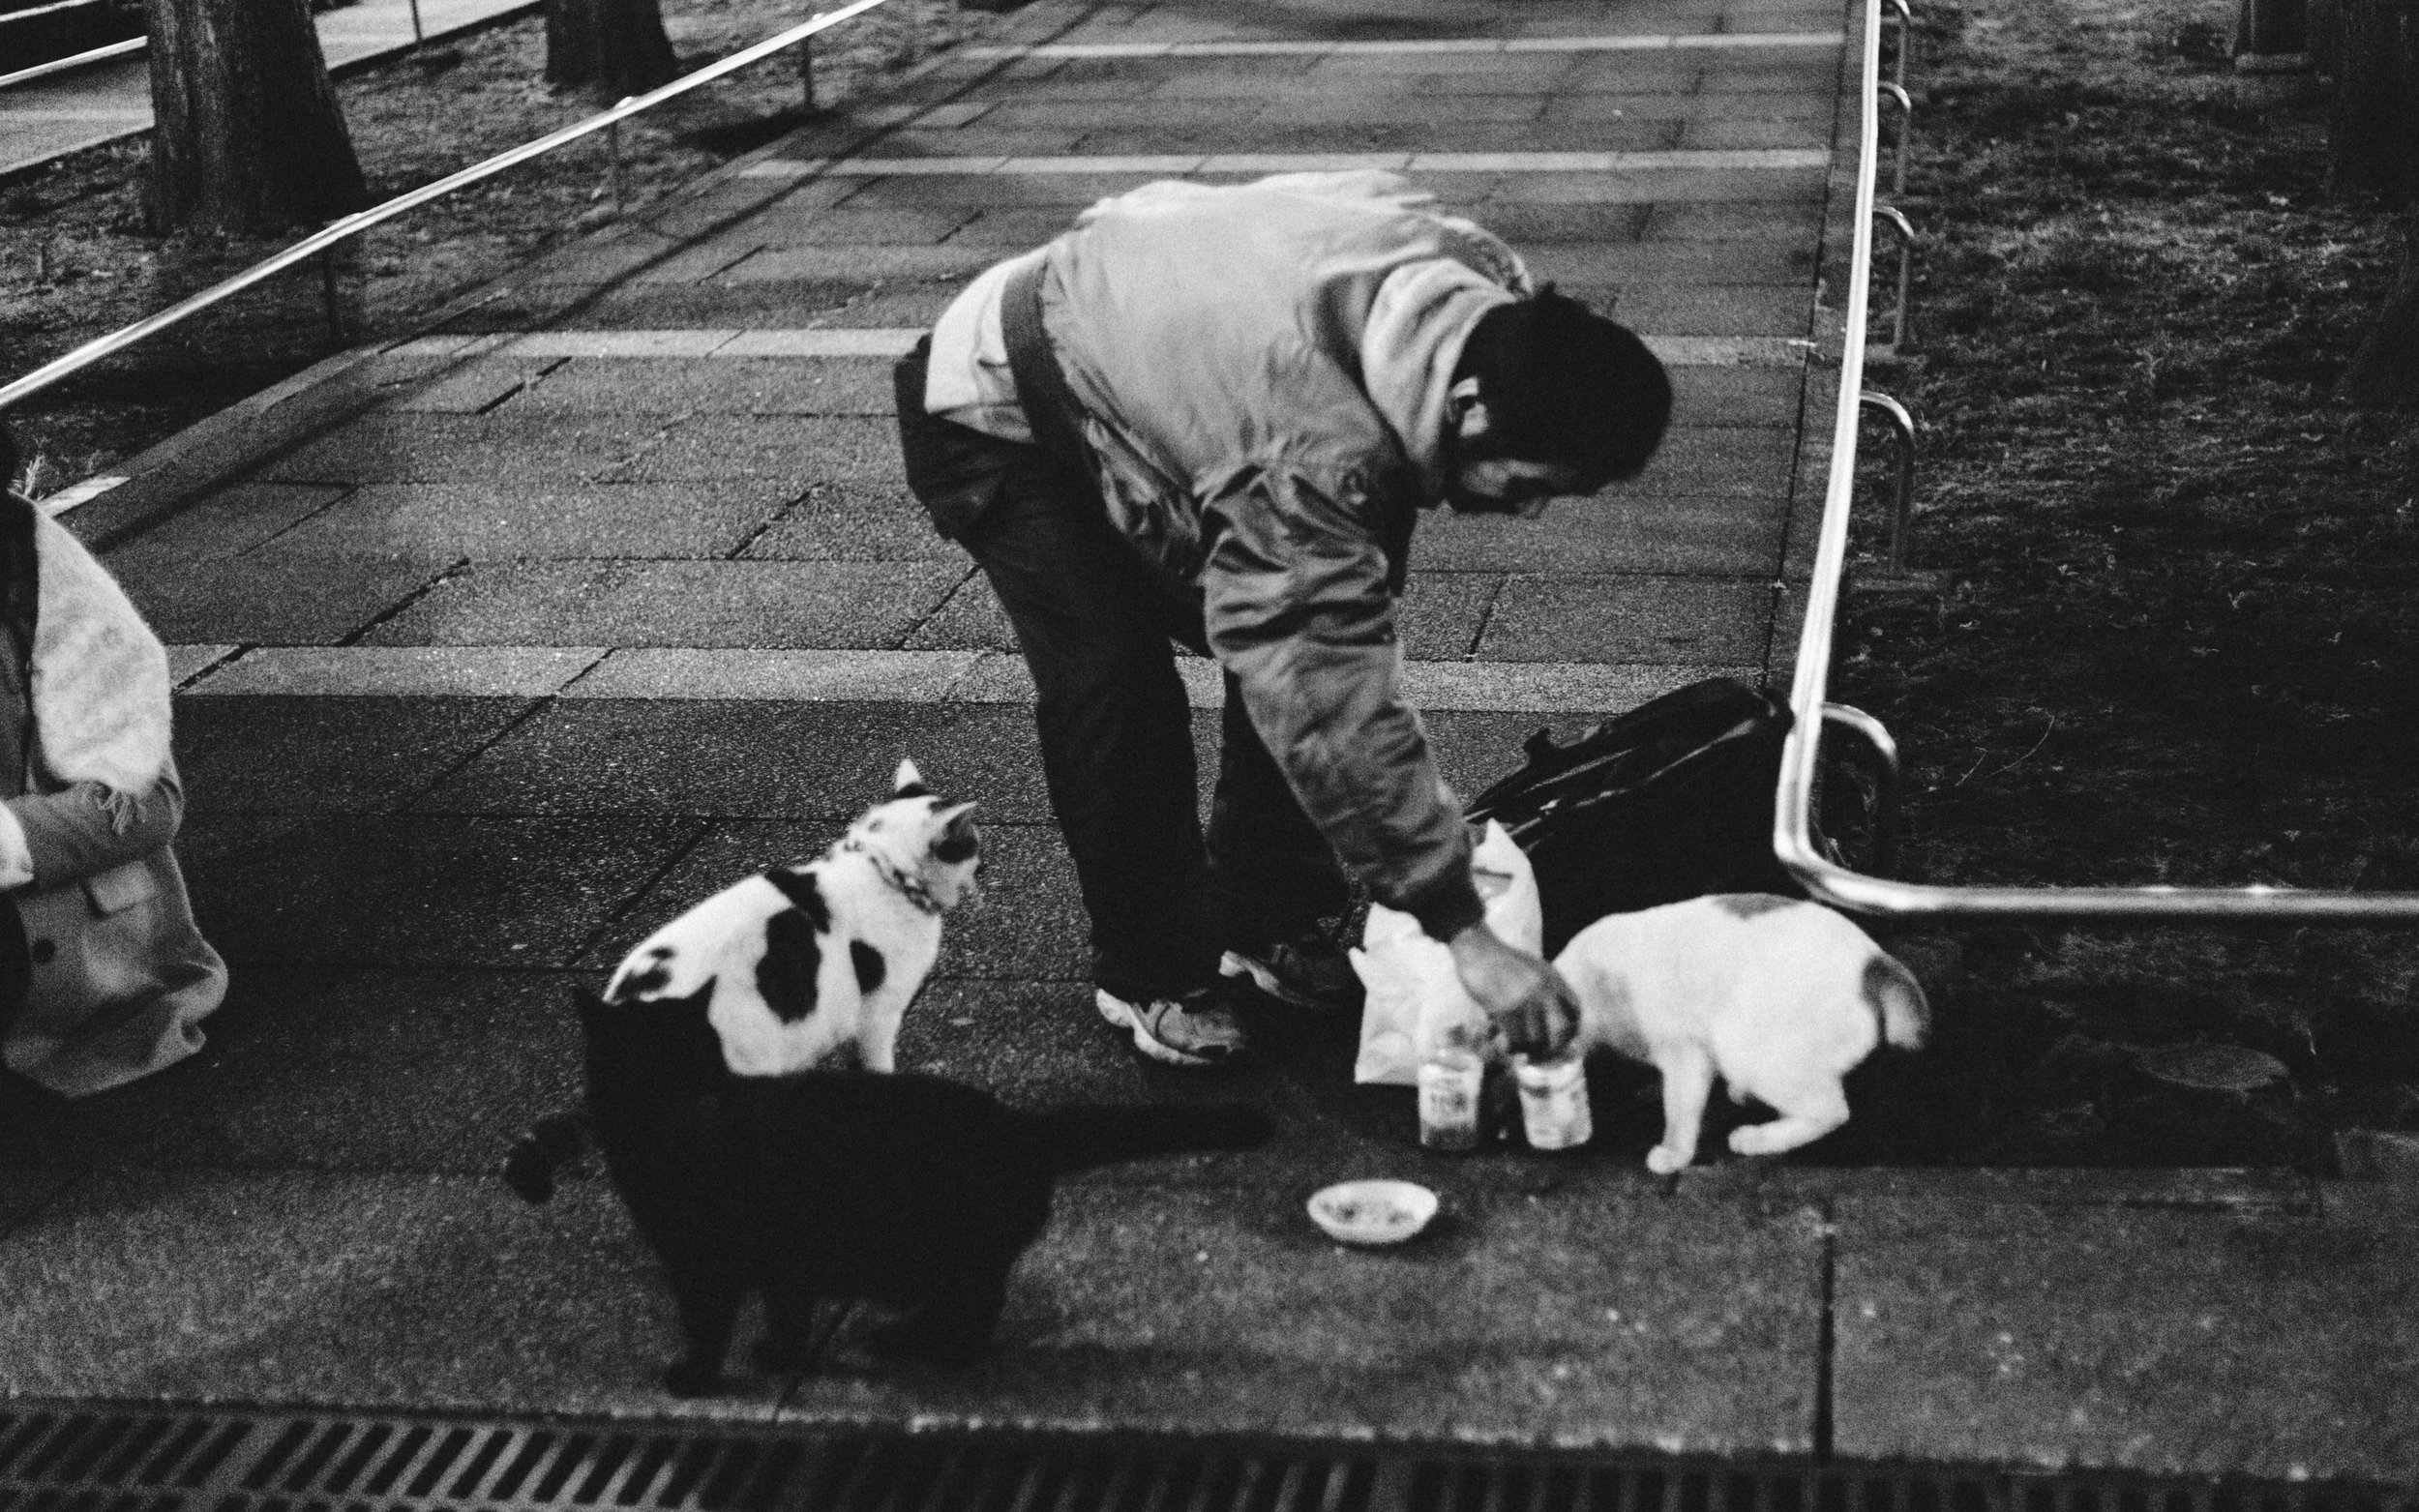 Stray cats also have a higher chance of dying during winter, as compared to summer countries' cats. Average lifespan is around 4-5 years for a cat in Tokyo.